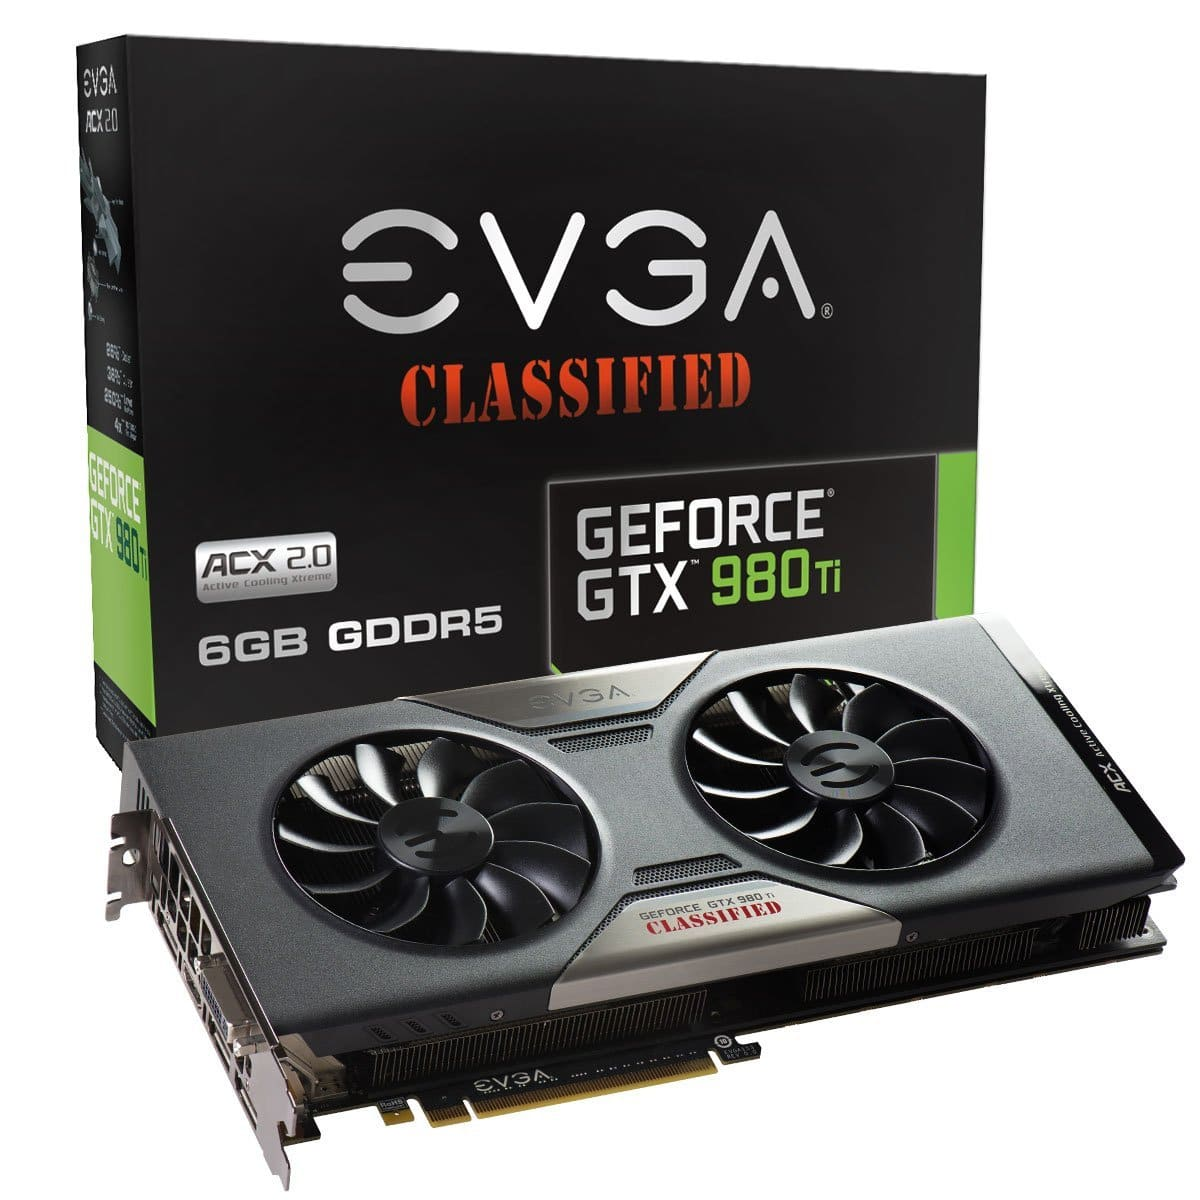 EVGA GeForce GTX 980 Ti 6GB GDDR5 Classified Video Card + The Division Game  $592 After $20 Rebate + Free S&H